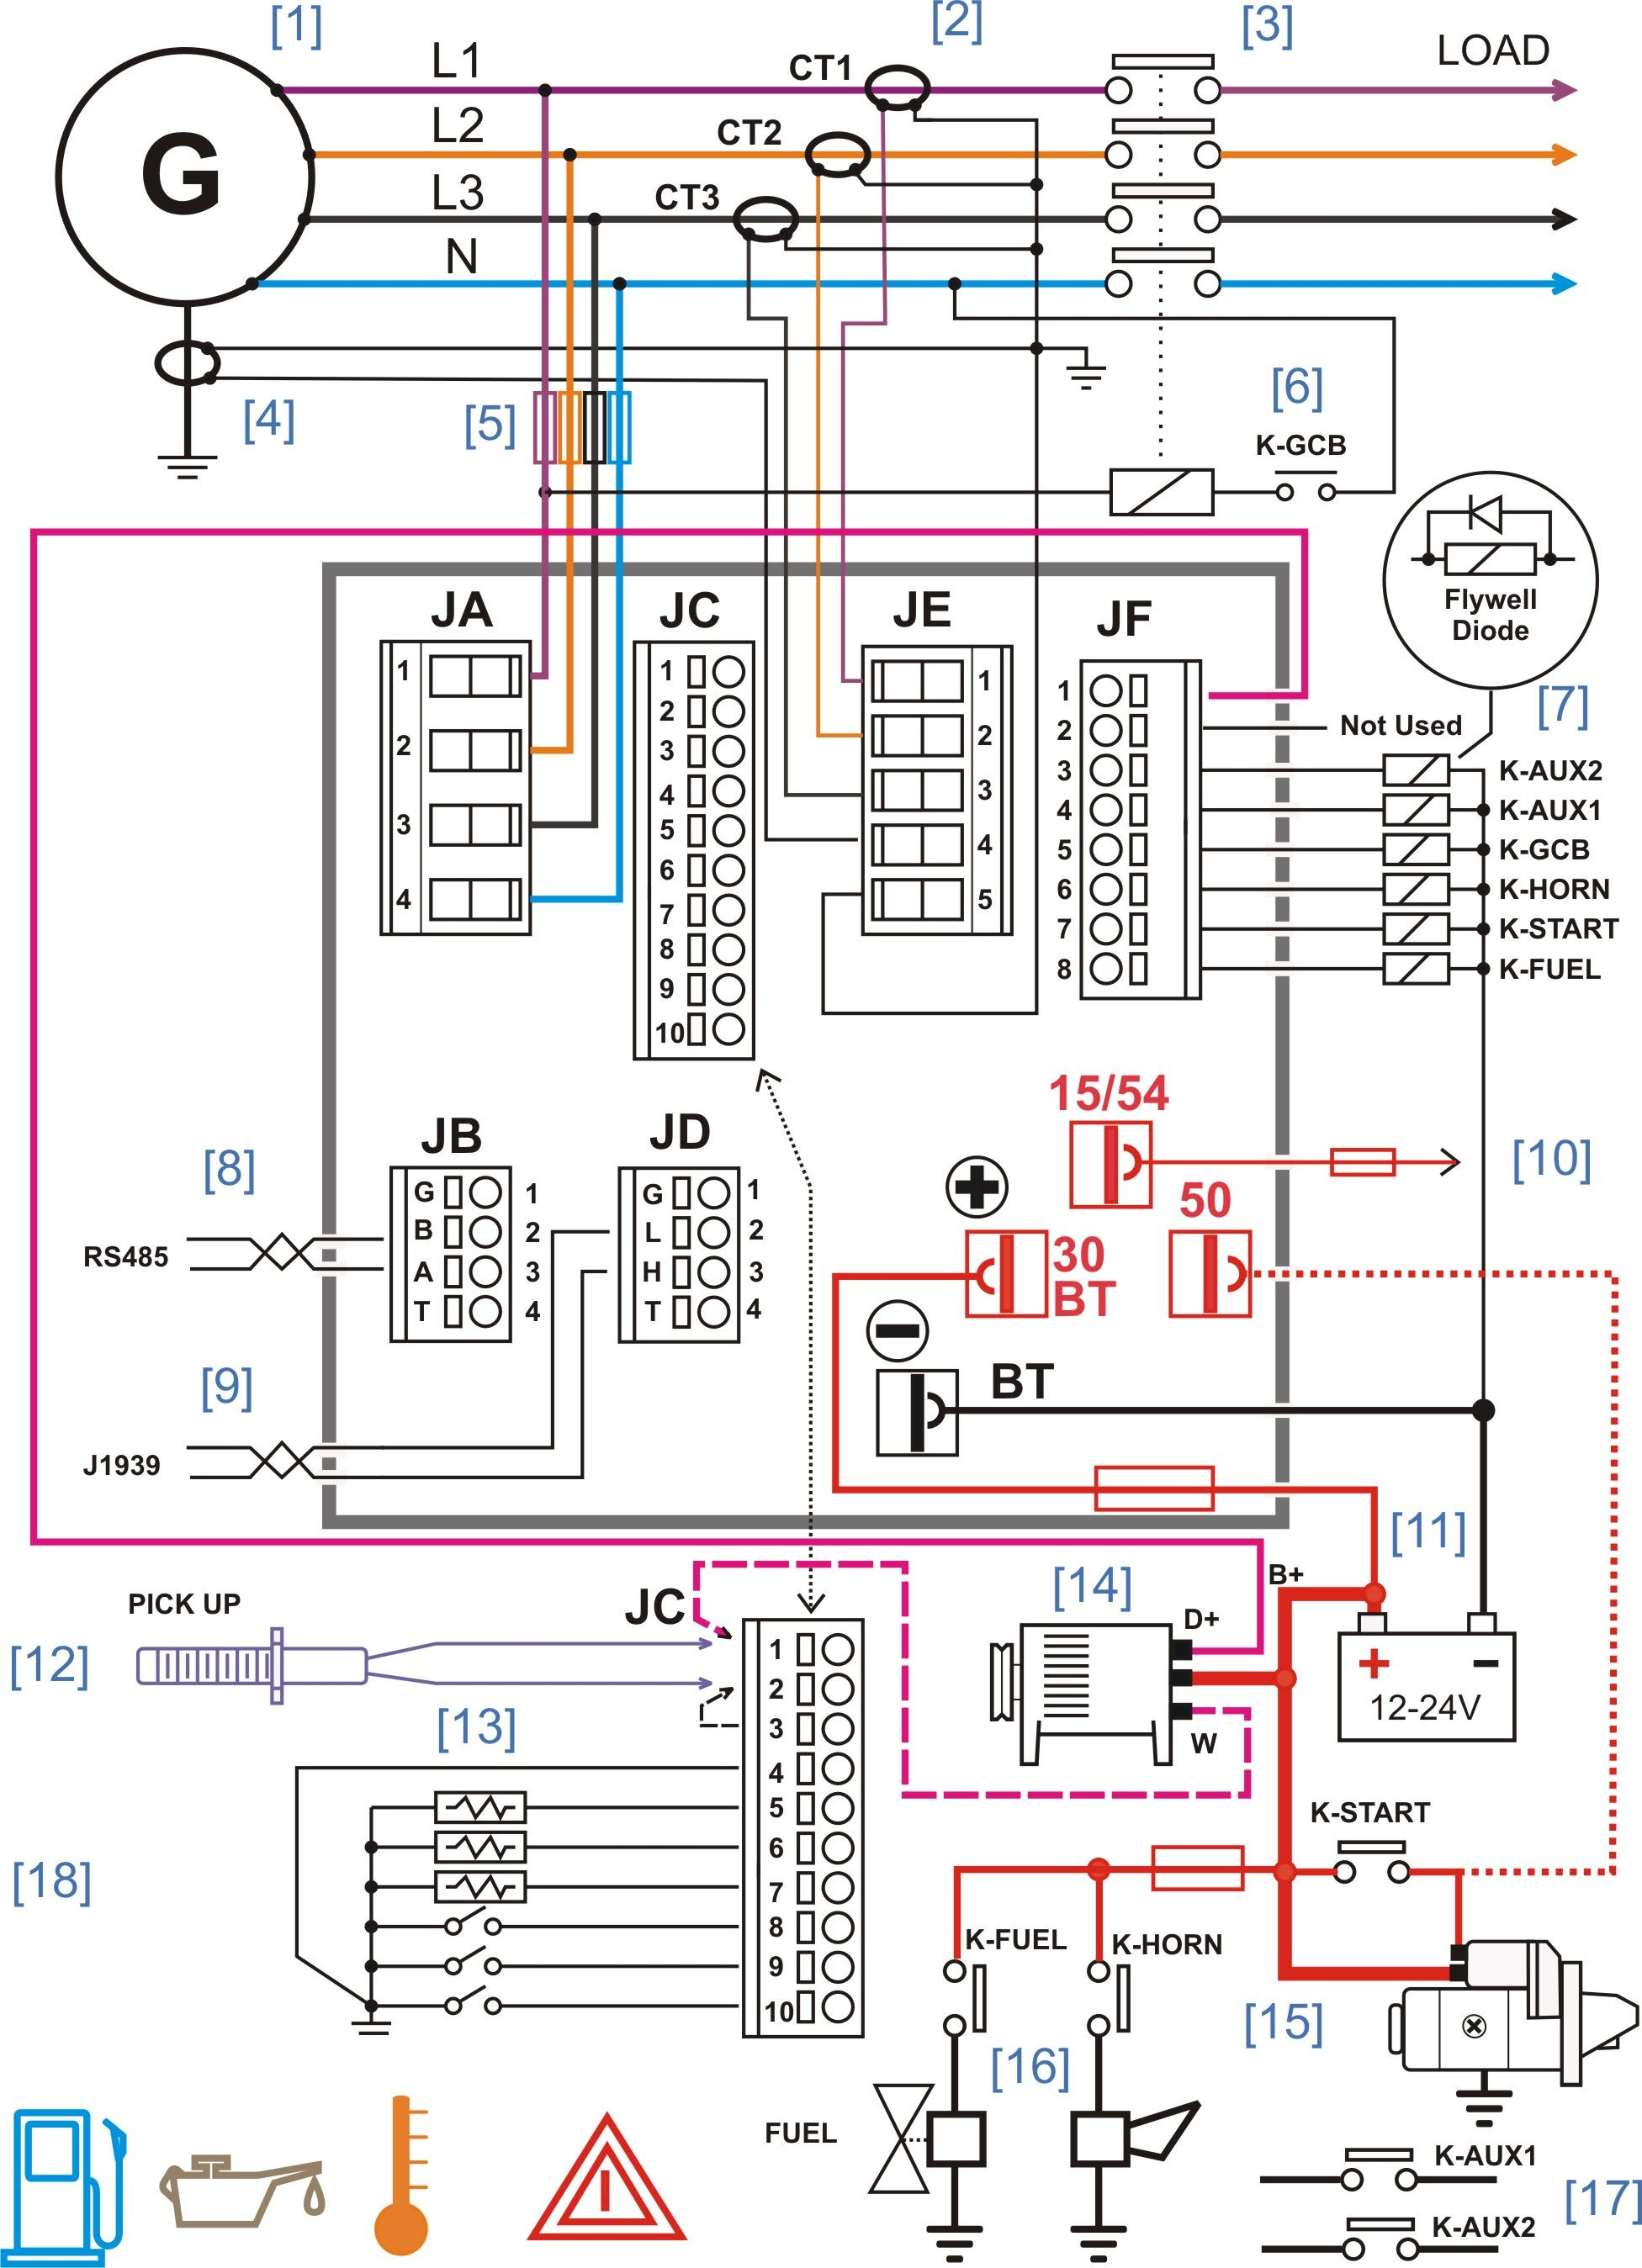 2017 Cummins Exhaust Wiring Schematic Great Design Of Diagram Isx Ecm Diesel Generator Control Panel Generators In Rh Pinterest Com Schematics M11